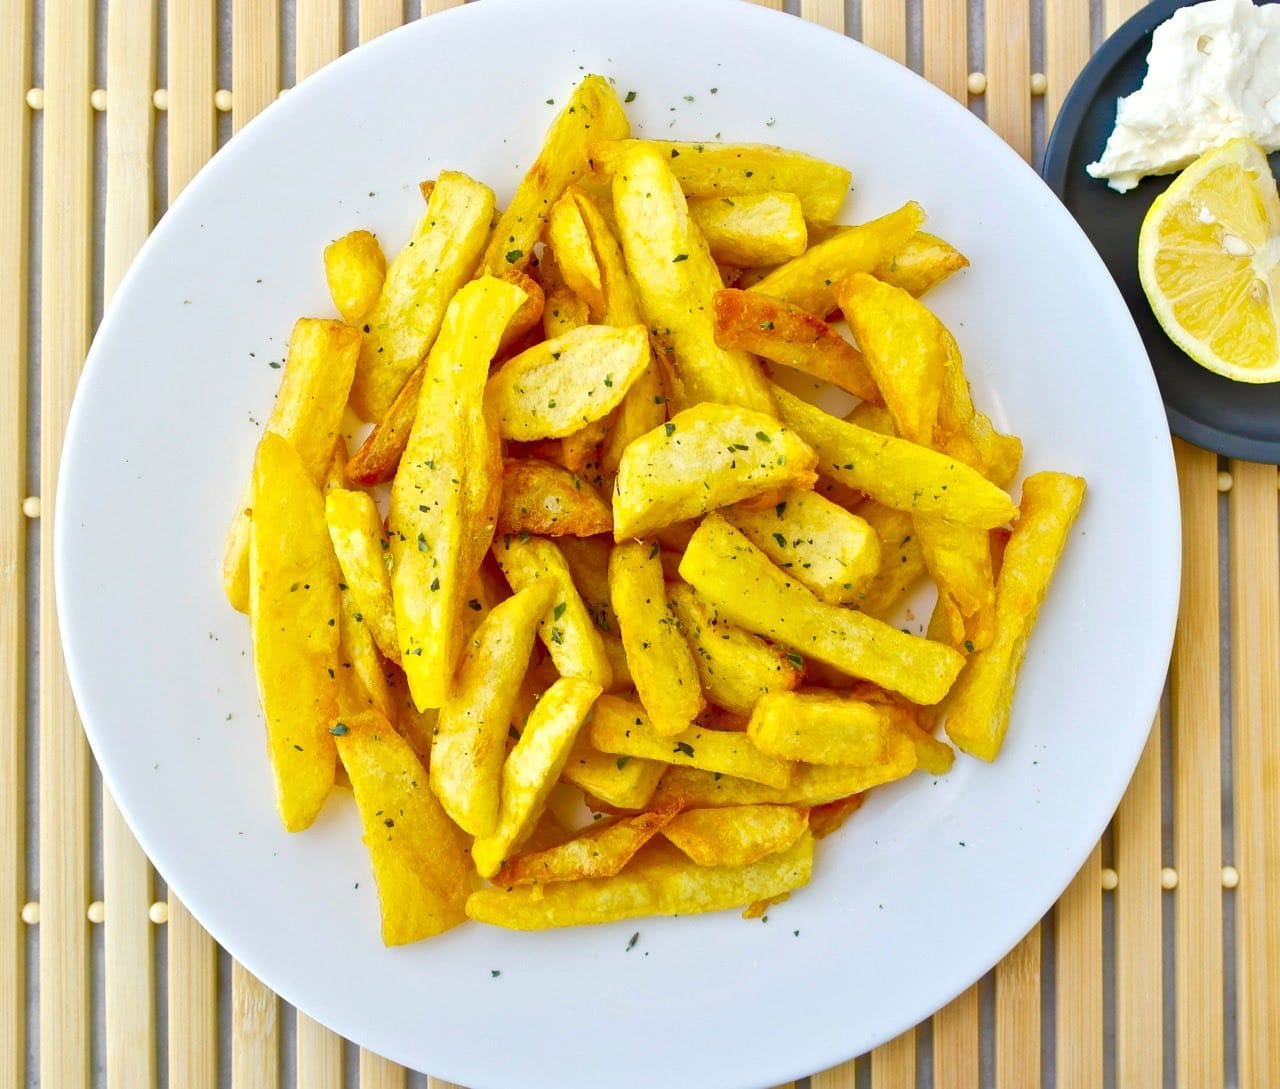 Olive oil fries